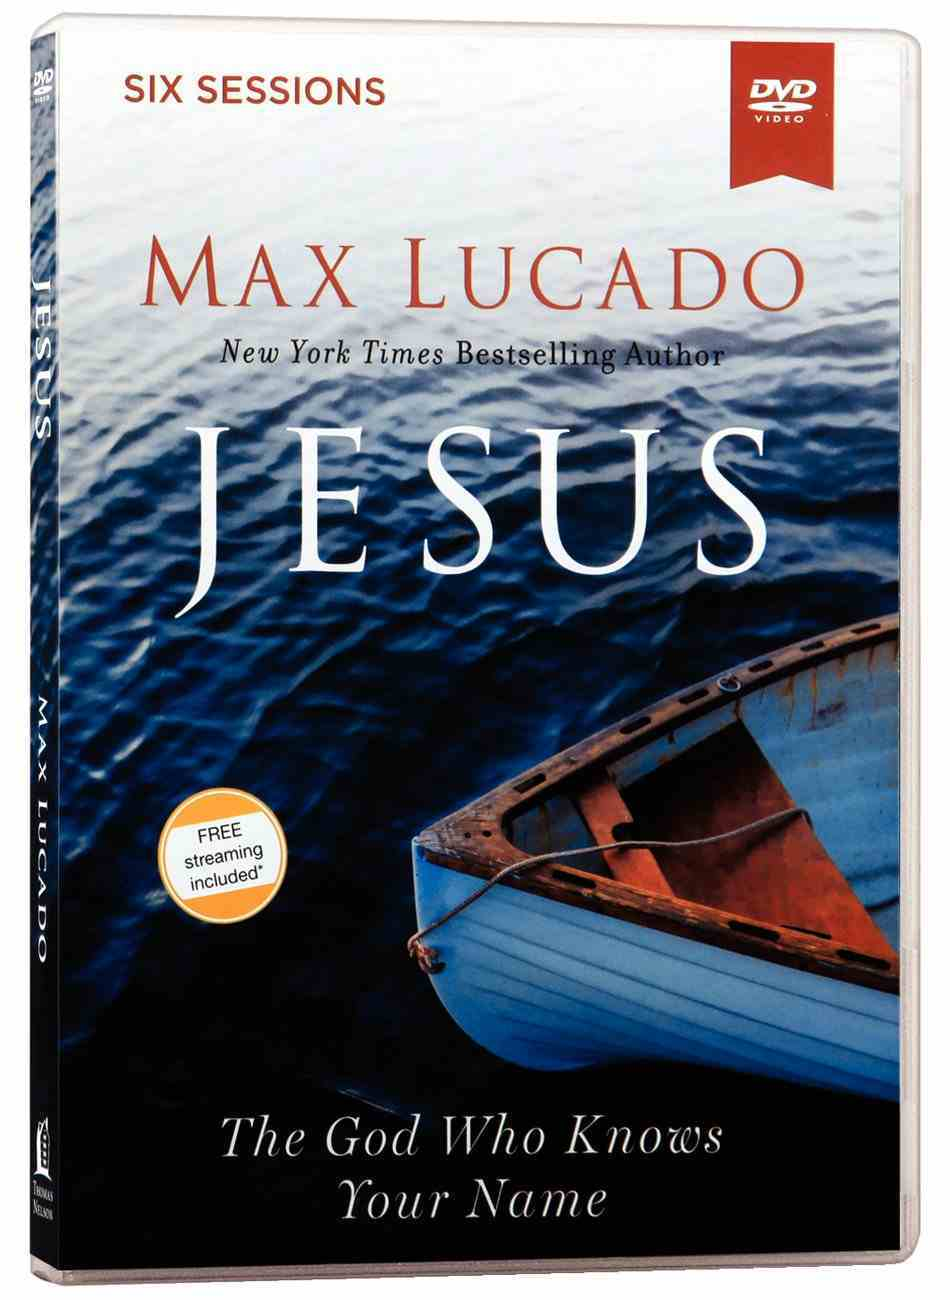 Jesus: The God Who Knows Your Name (All Region, Ntsc, Closed Caption) (Video Study) DVD